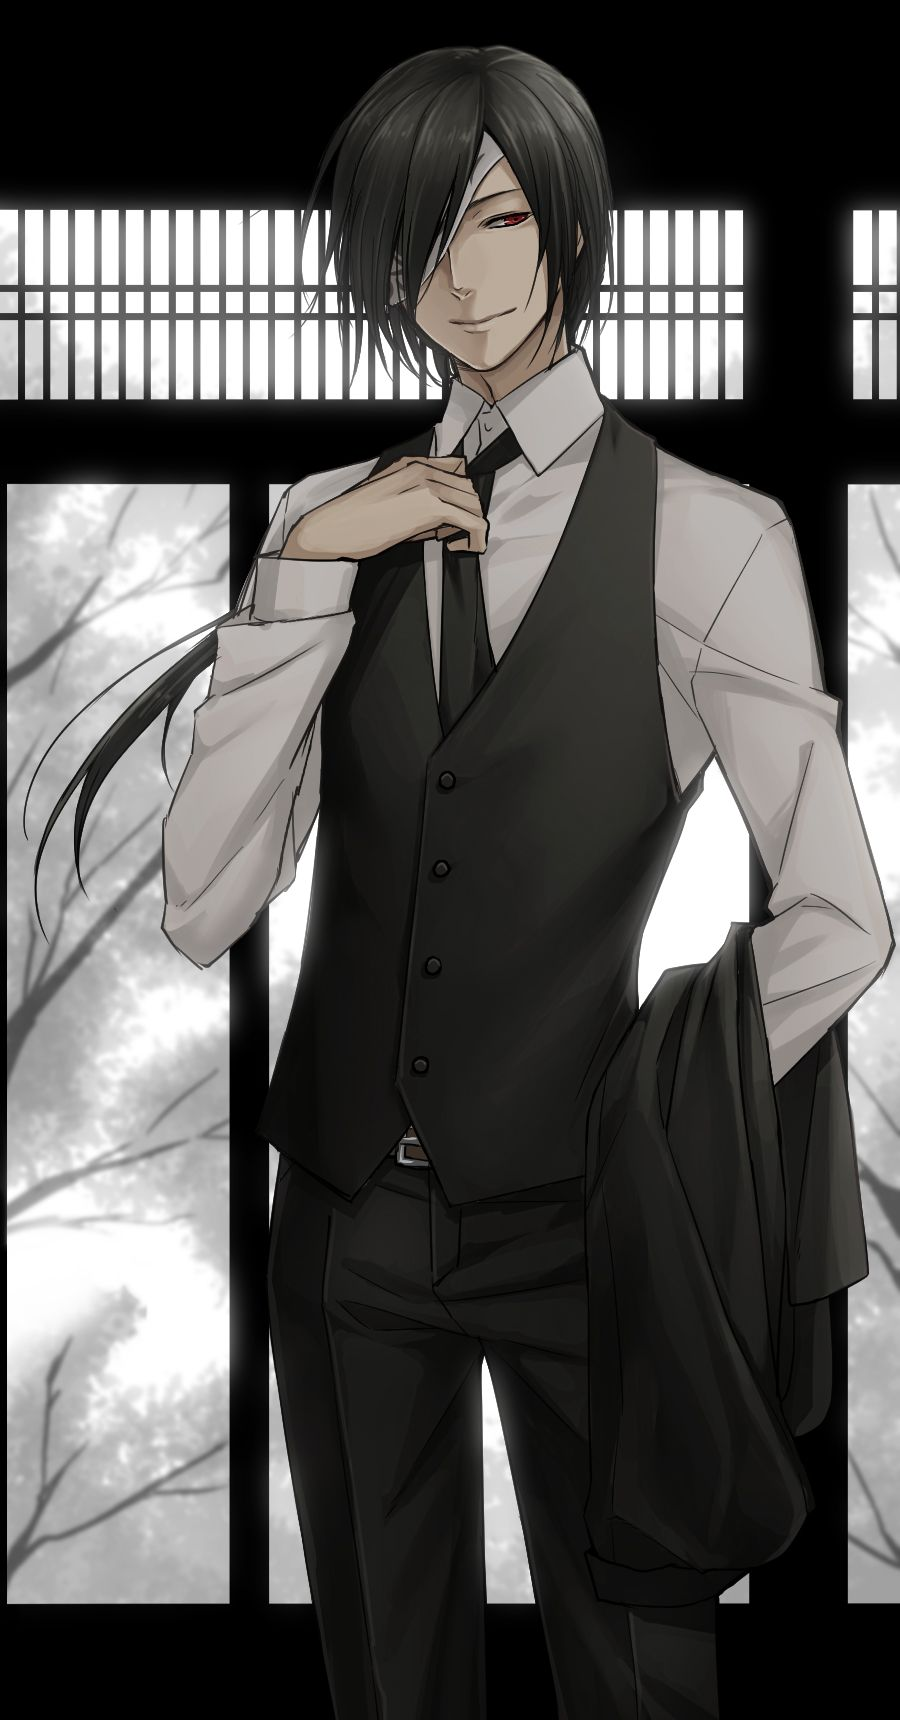 Matoba Seiji From Natsume Yuujinchou Wearing A Black And White Suit White Shirt Vest And A Tie Black Haired Bi Cute Anime Guys Natsume Takashi Long Hair Styles